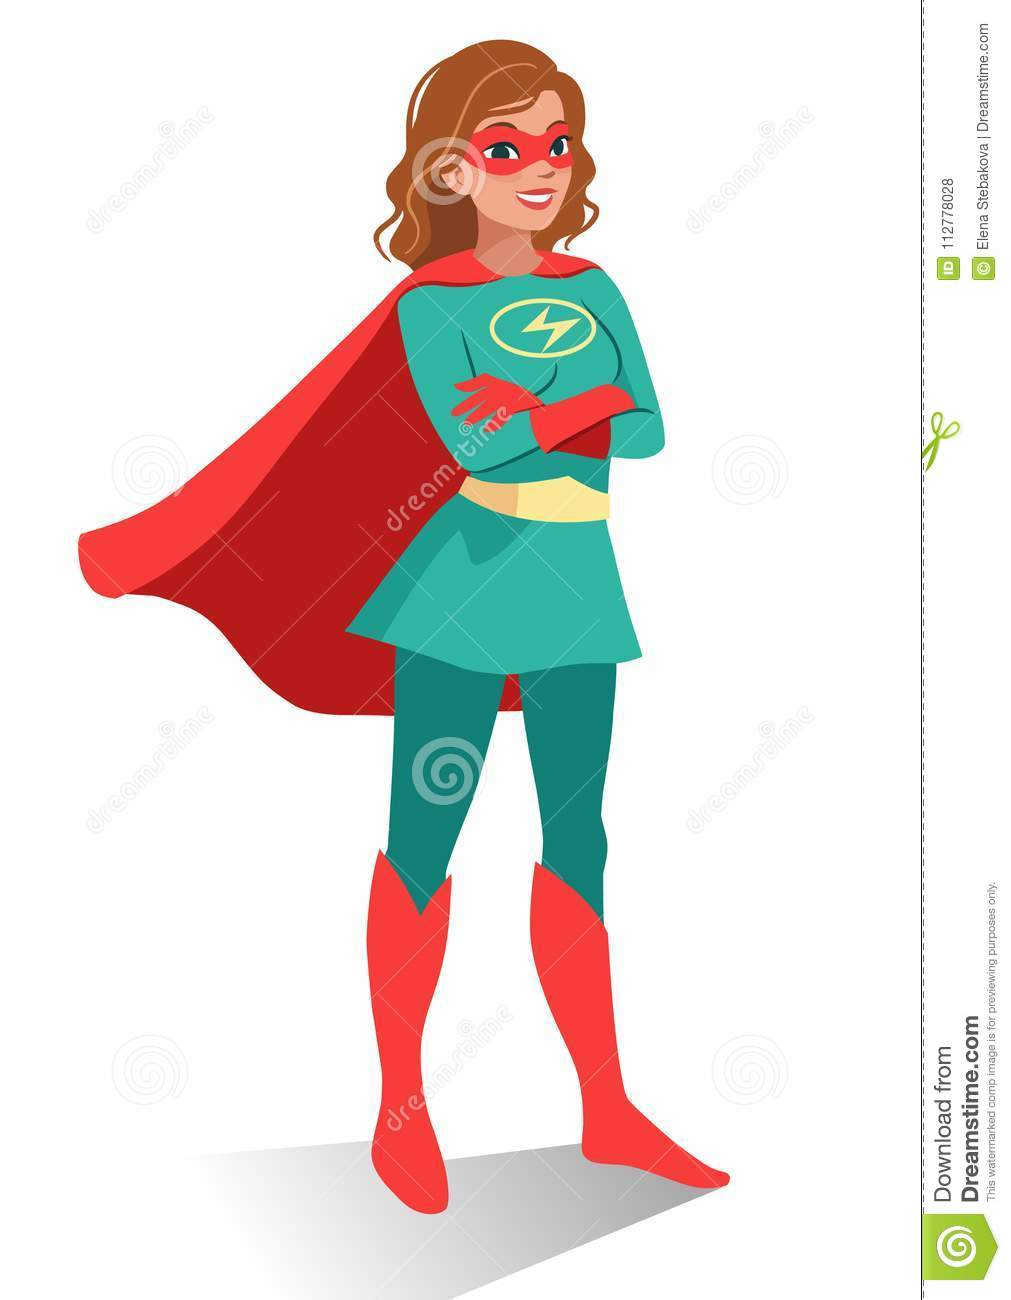 Smiling friendly confident young Caucasian woman in superhero co